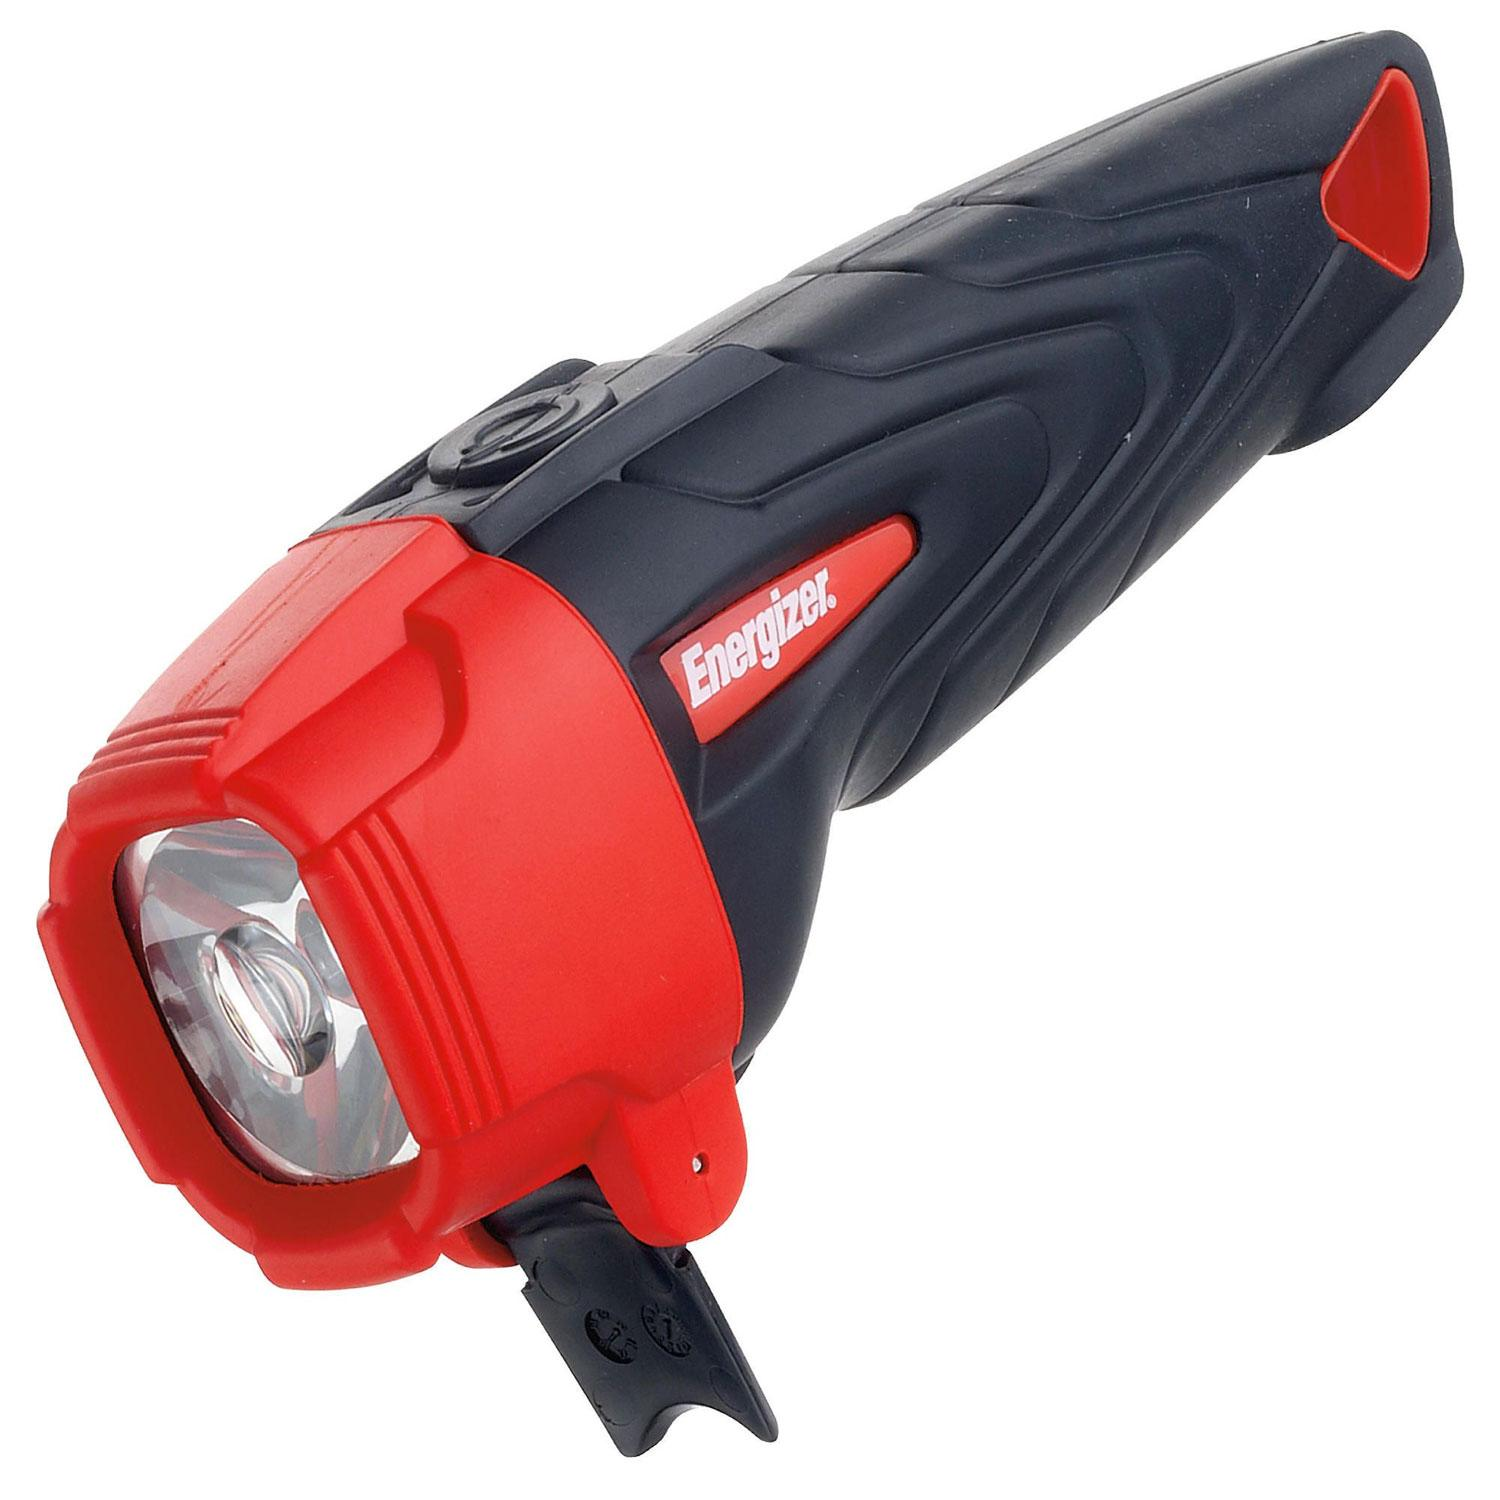 Energizer Weatherproof Heavy Duty Impact LED Torch